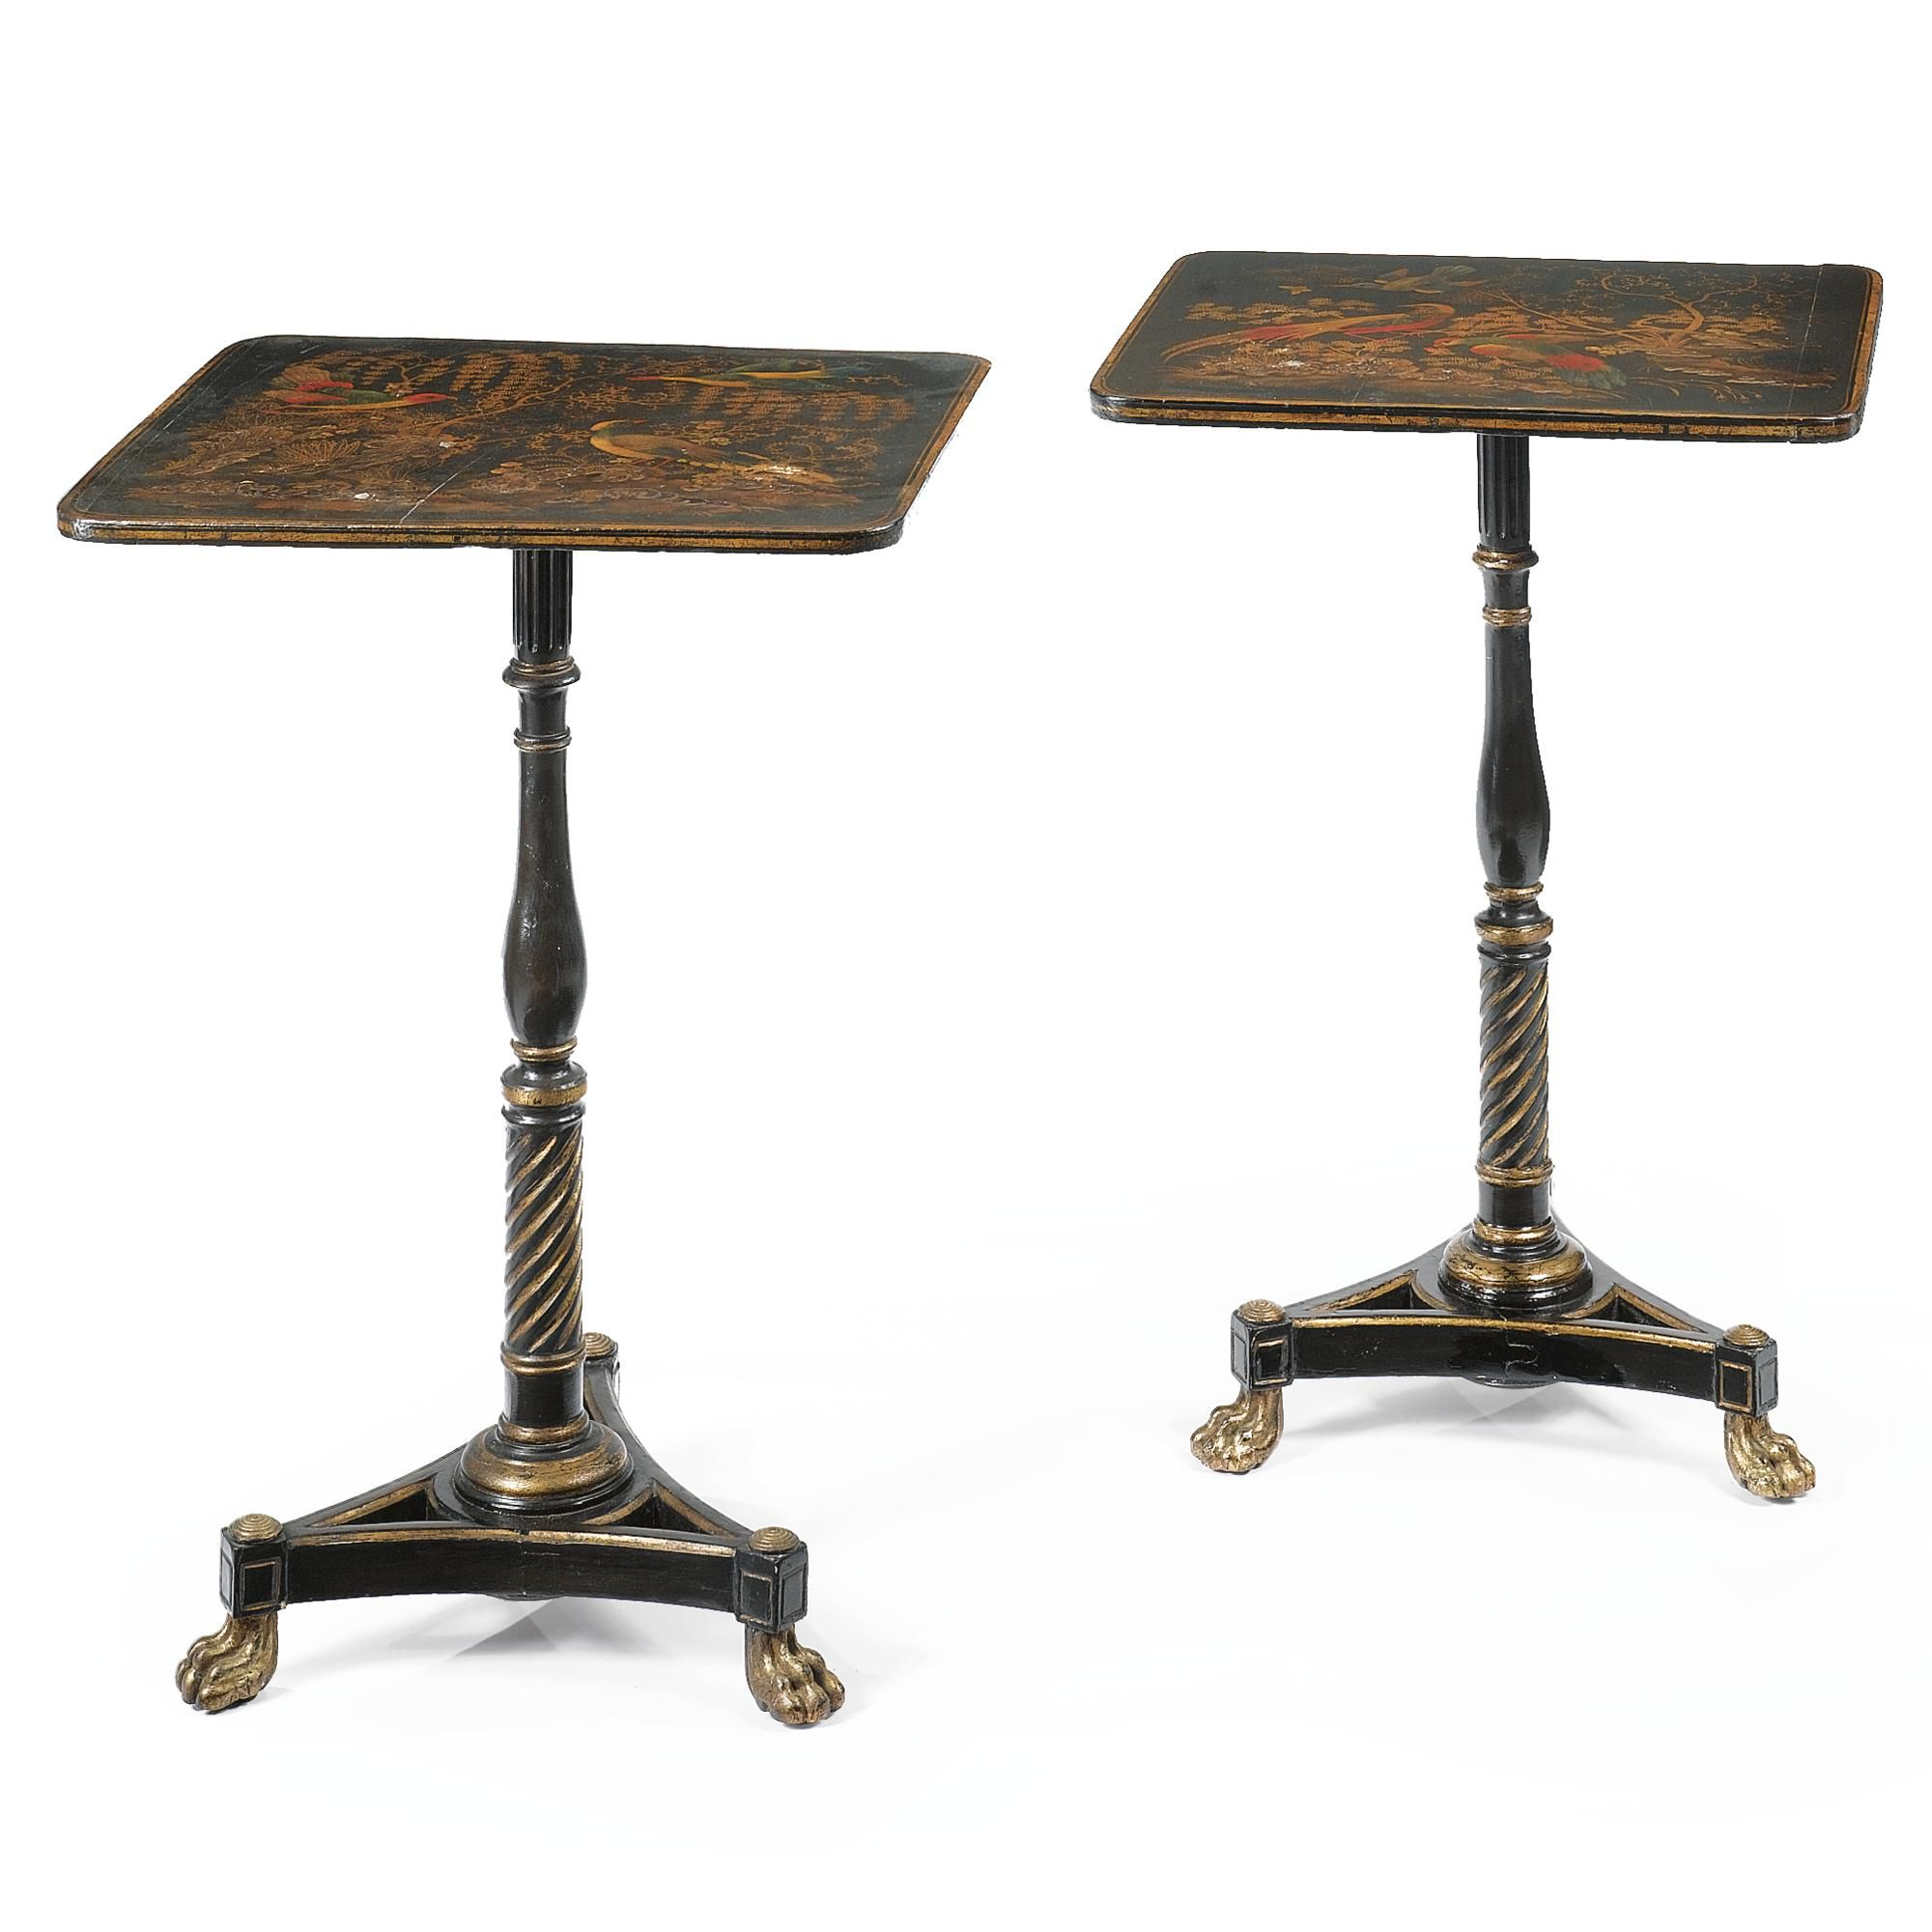 Date Unspecified A Pair Of Regency Black Japanned And